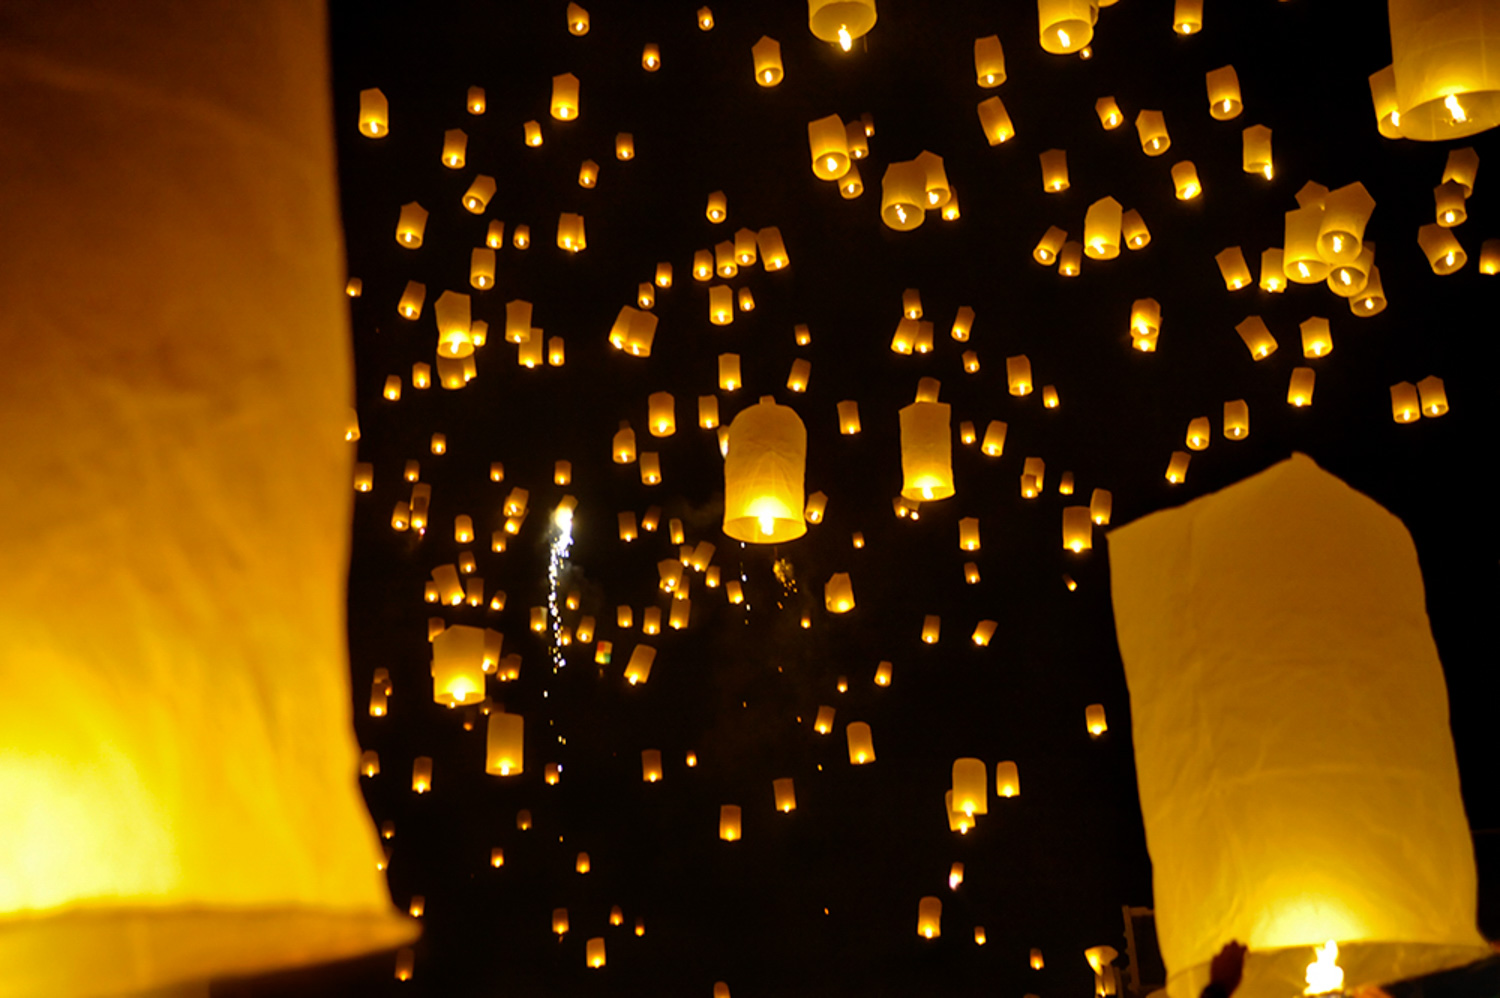 sky lanterns being released a festival in Thailand.